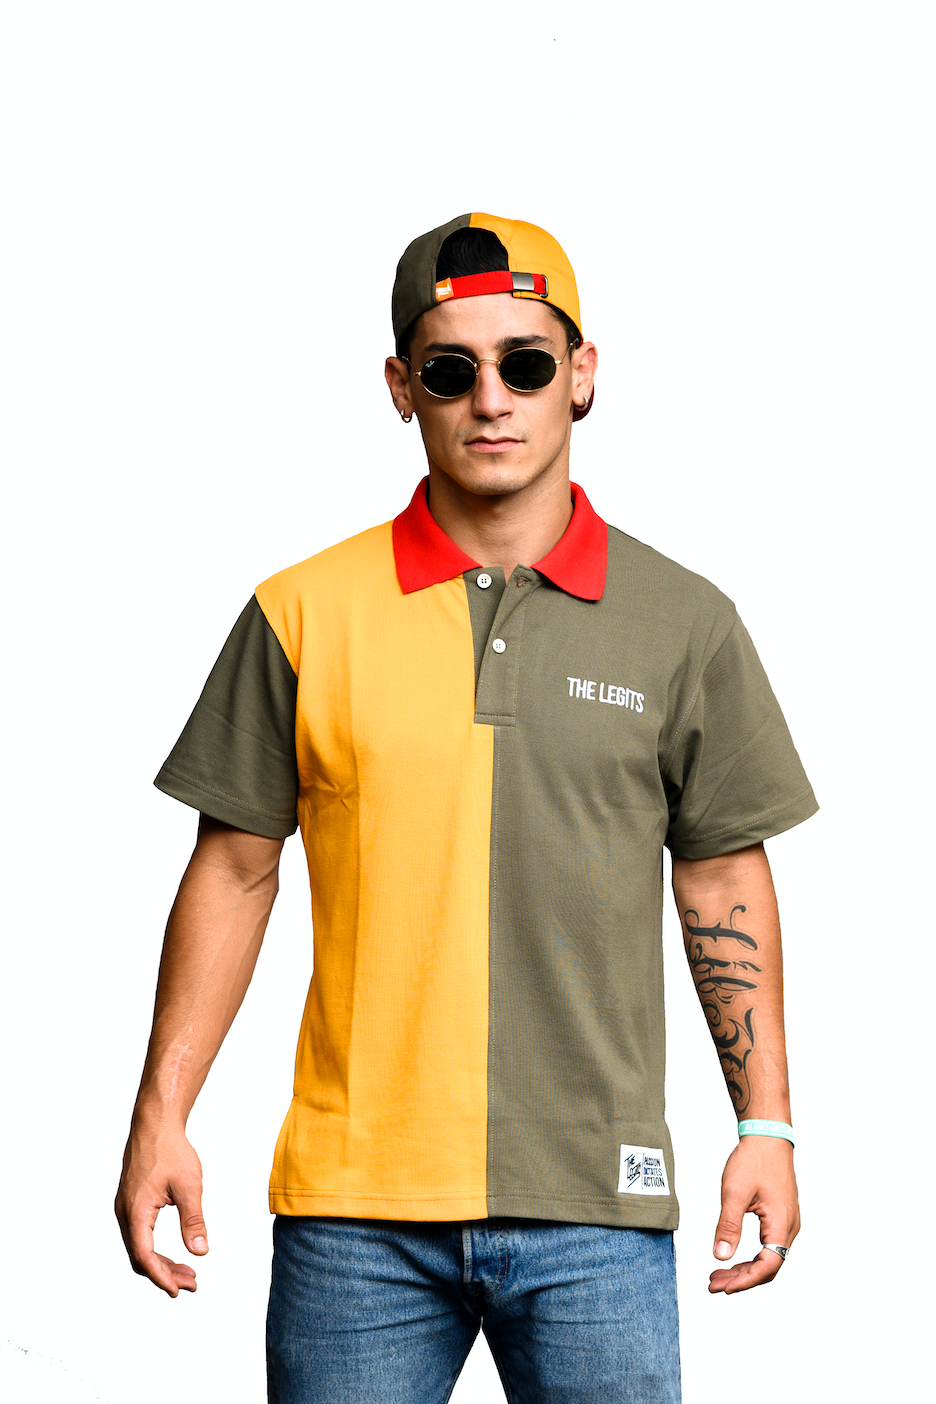 Polo Tee - The Legits (Tricolor)